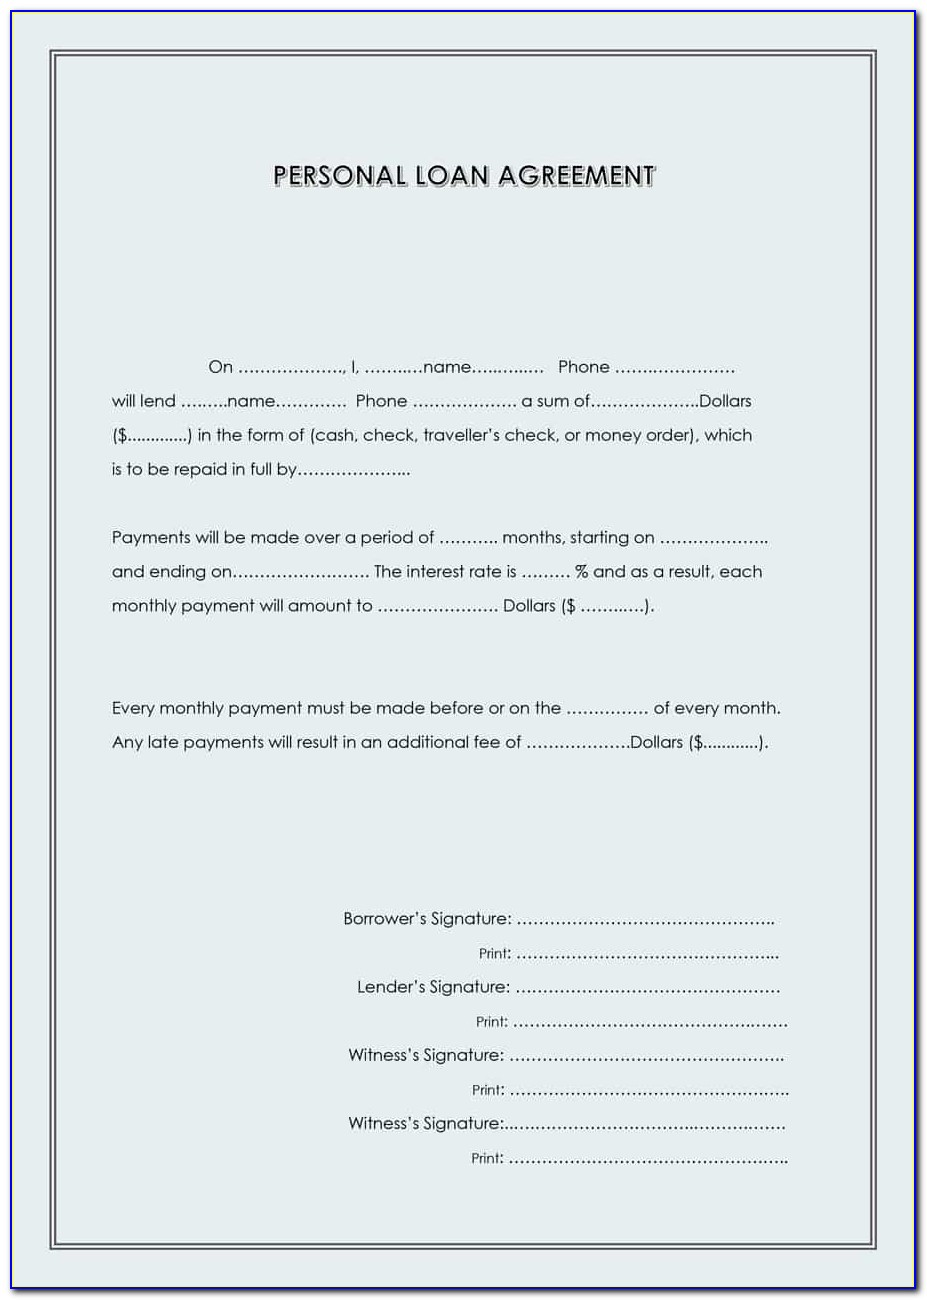 Personal Loan Agreement Template Uk Free